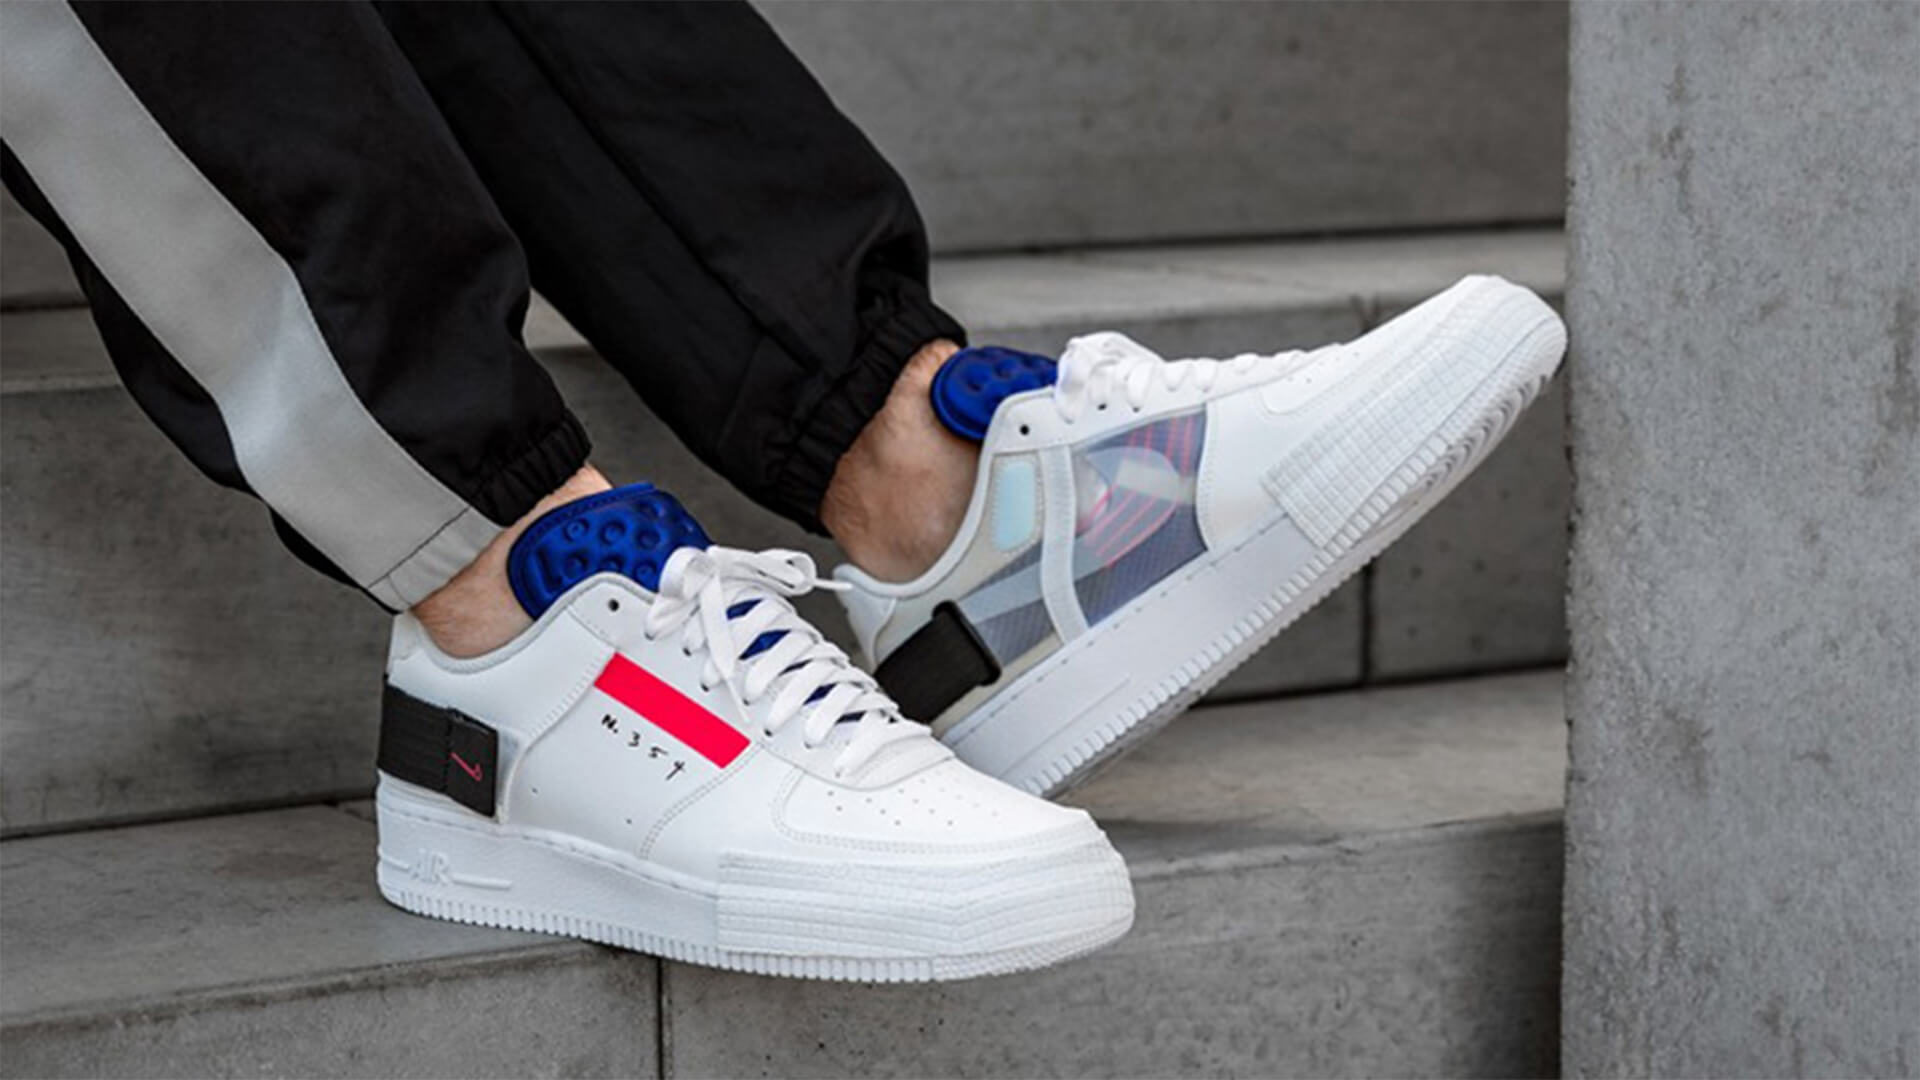 Latest Nike Air Force 1 Af1 Trainer Releases Next Drops The